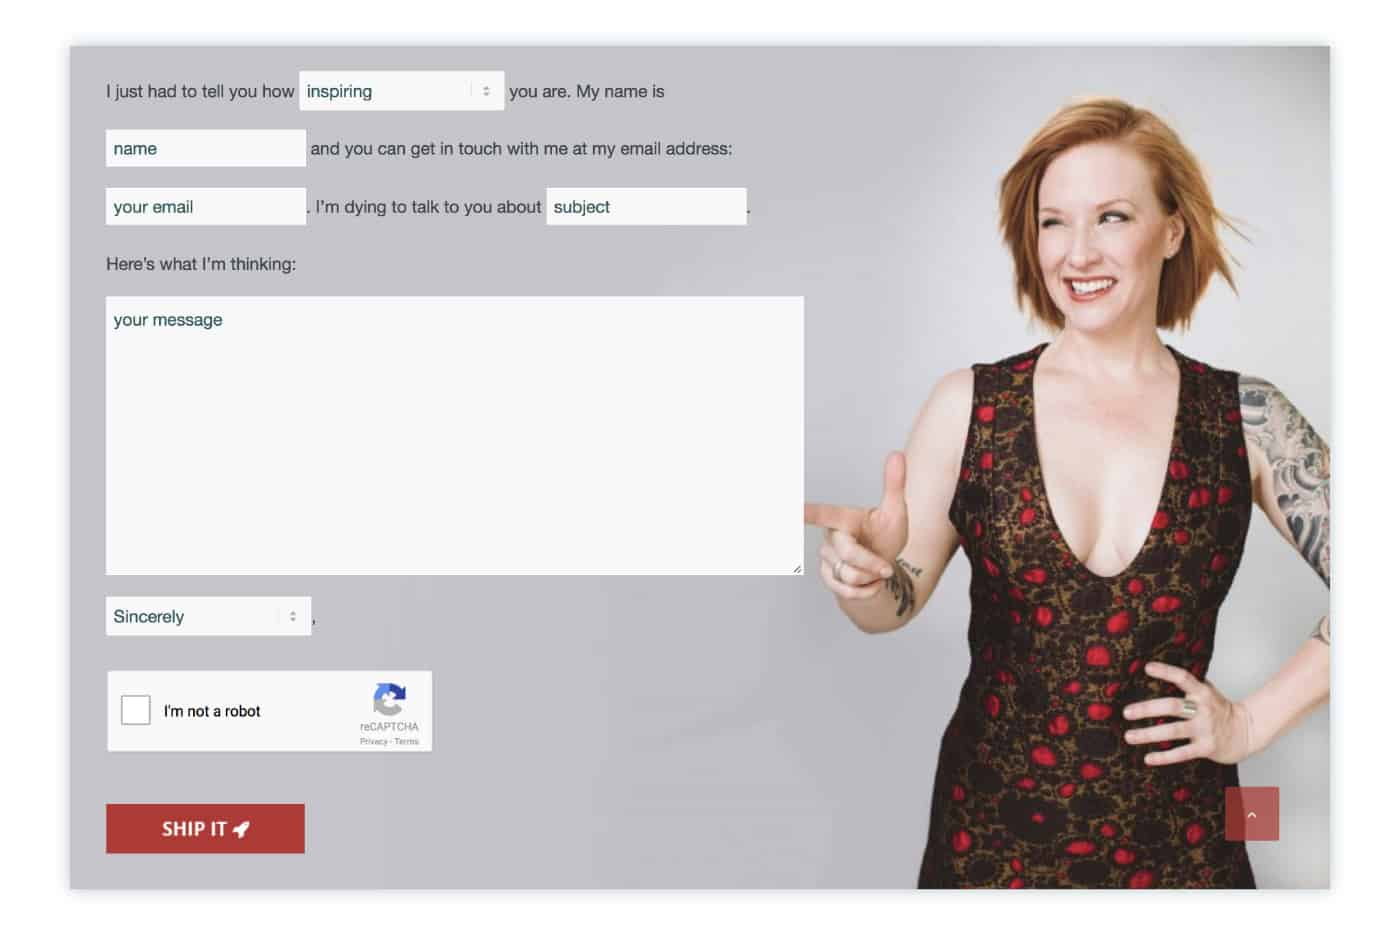 5 Genius Contact Forms That Will Get You More Clients